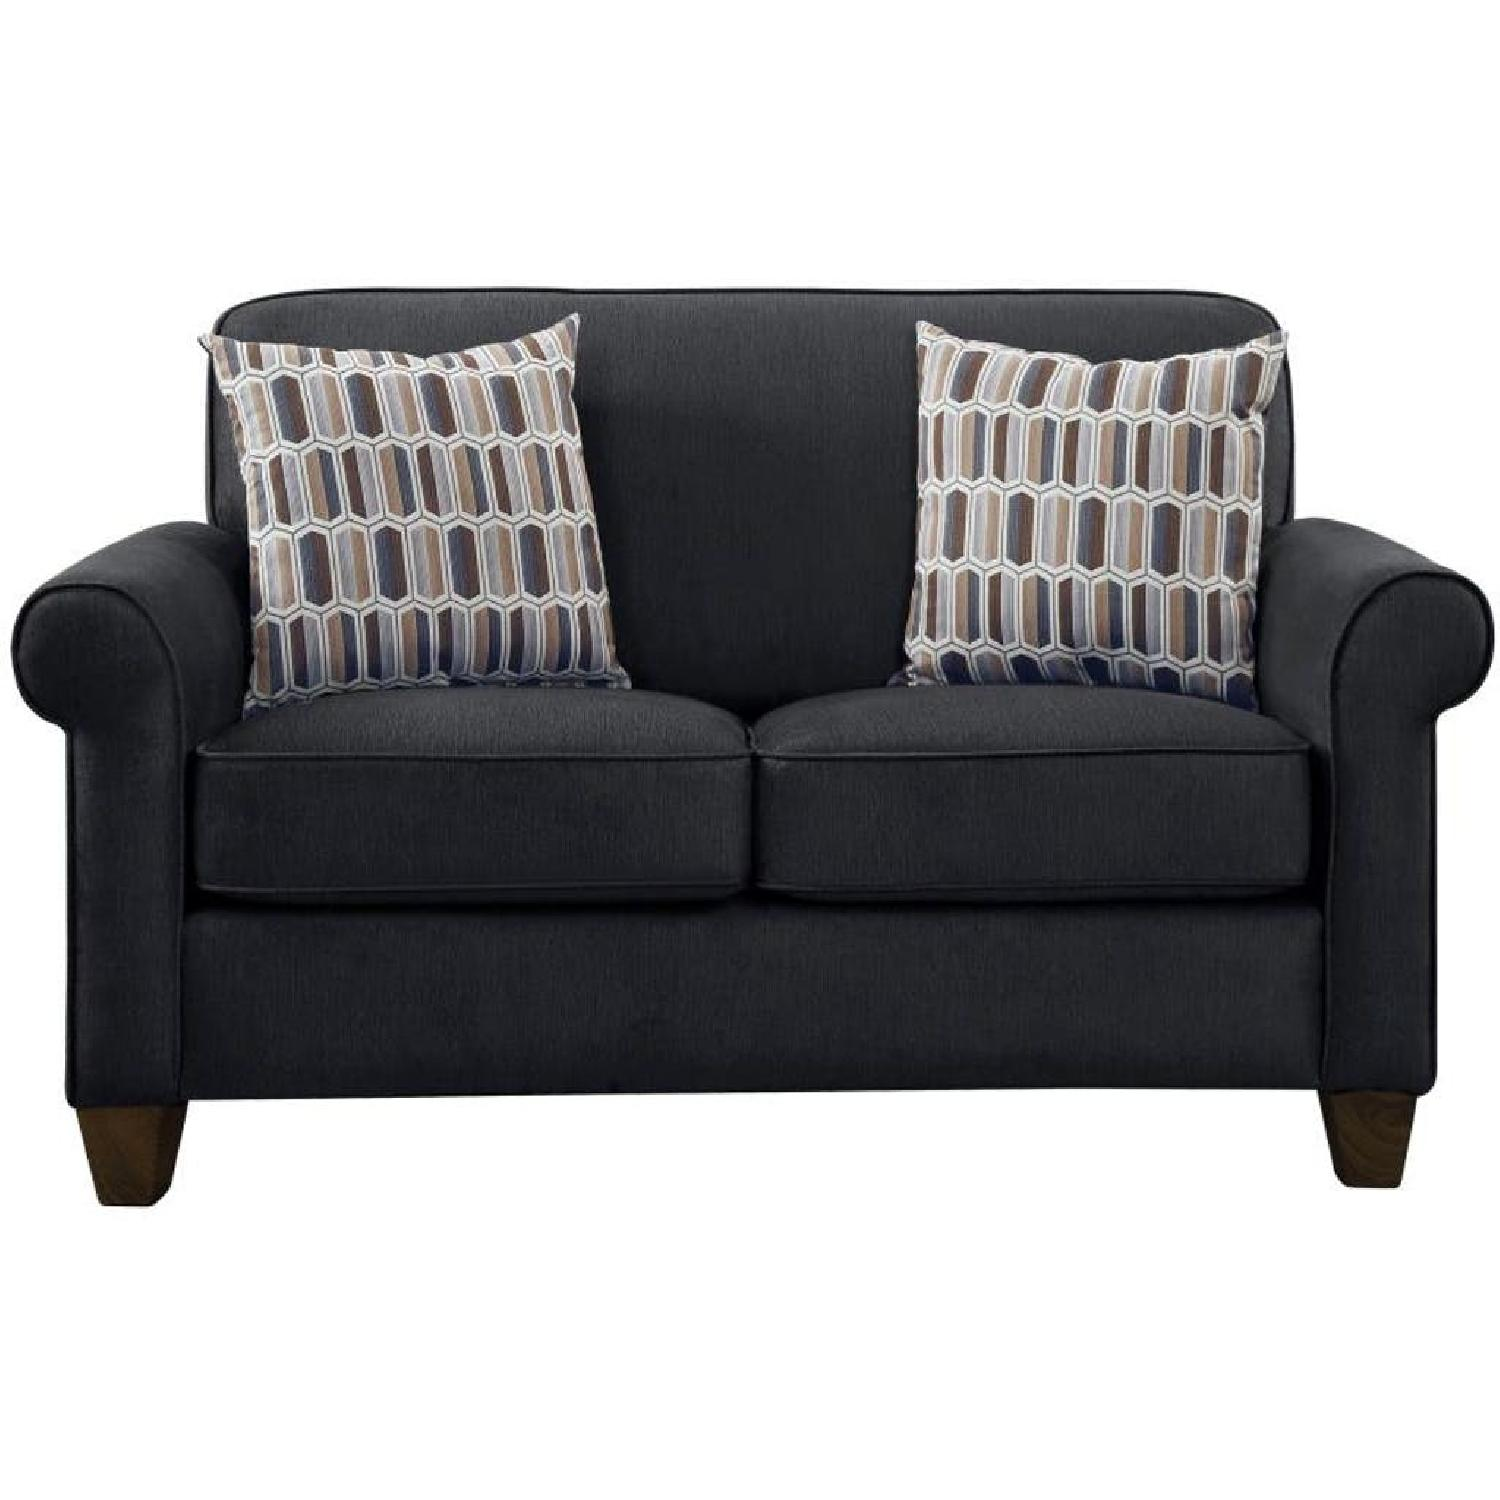 Rolled Arm Fabric Loveseat in Graphite w/ Accent Pillows